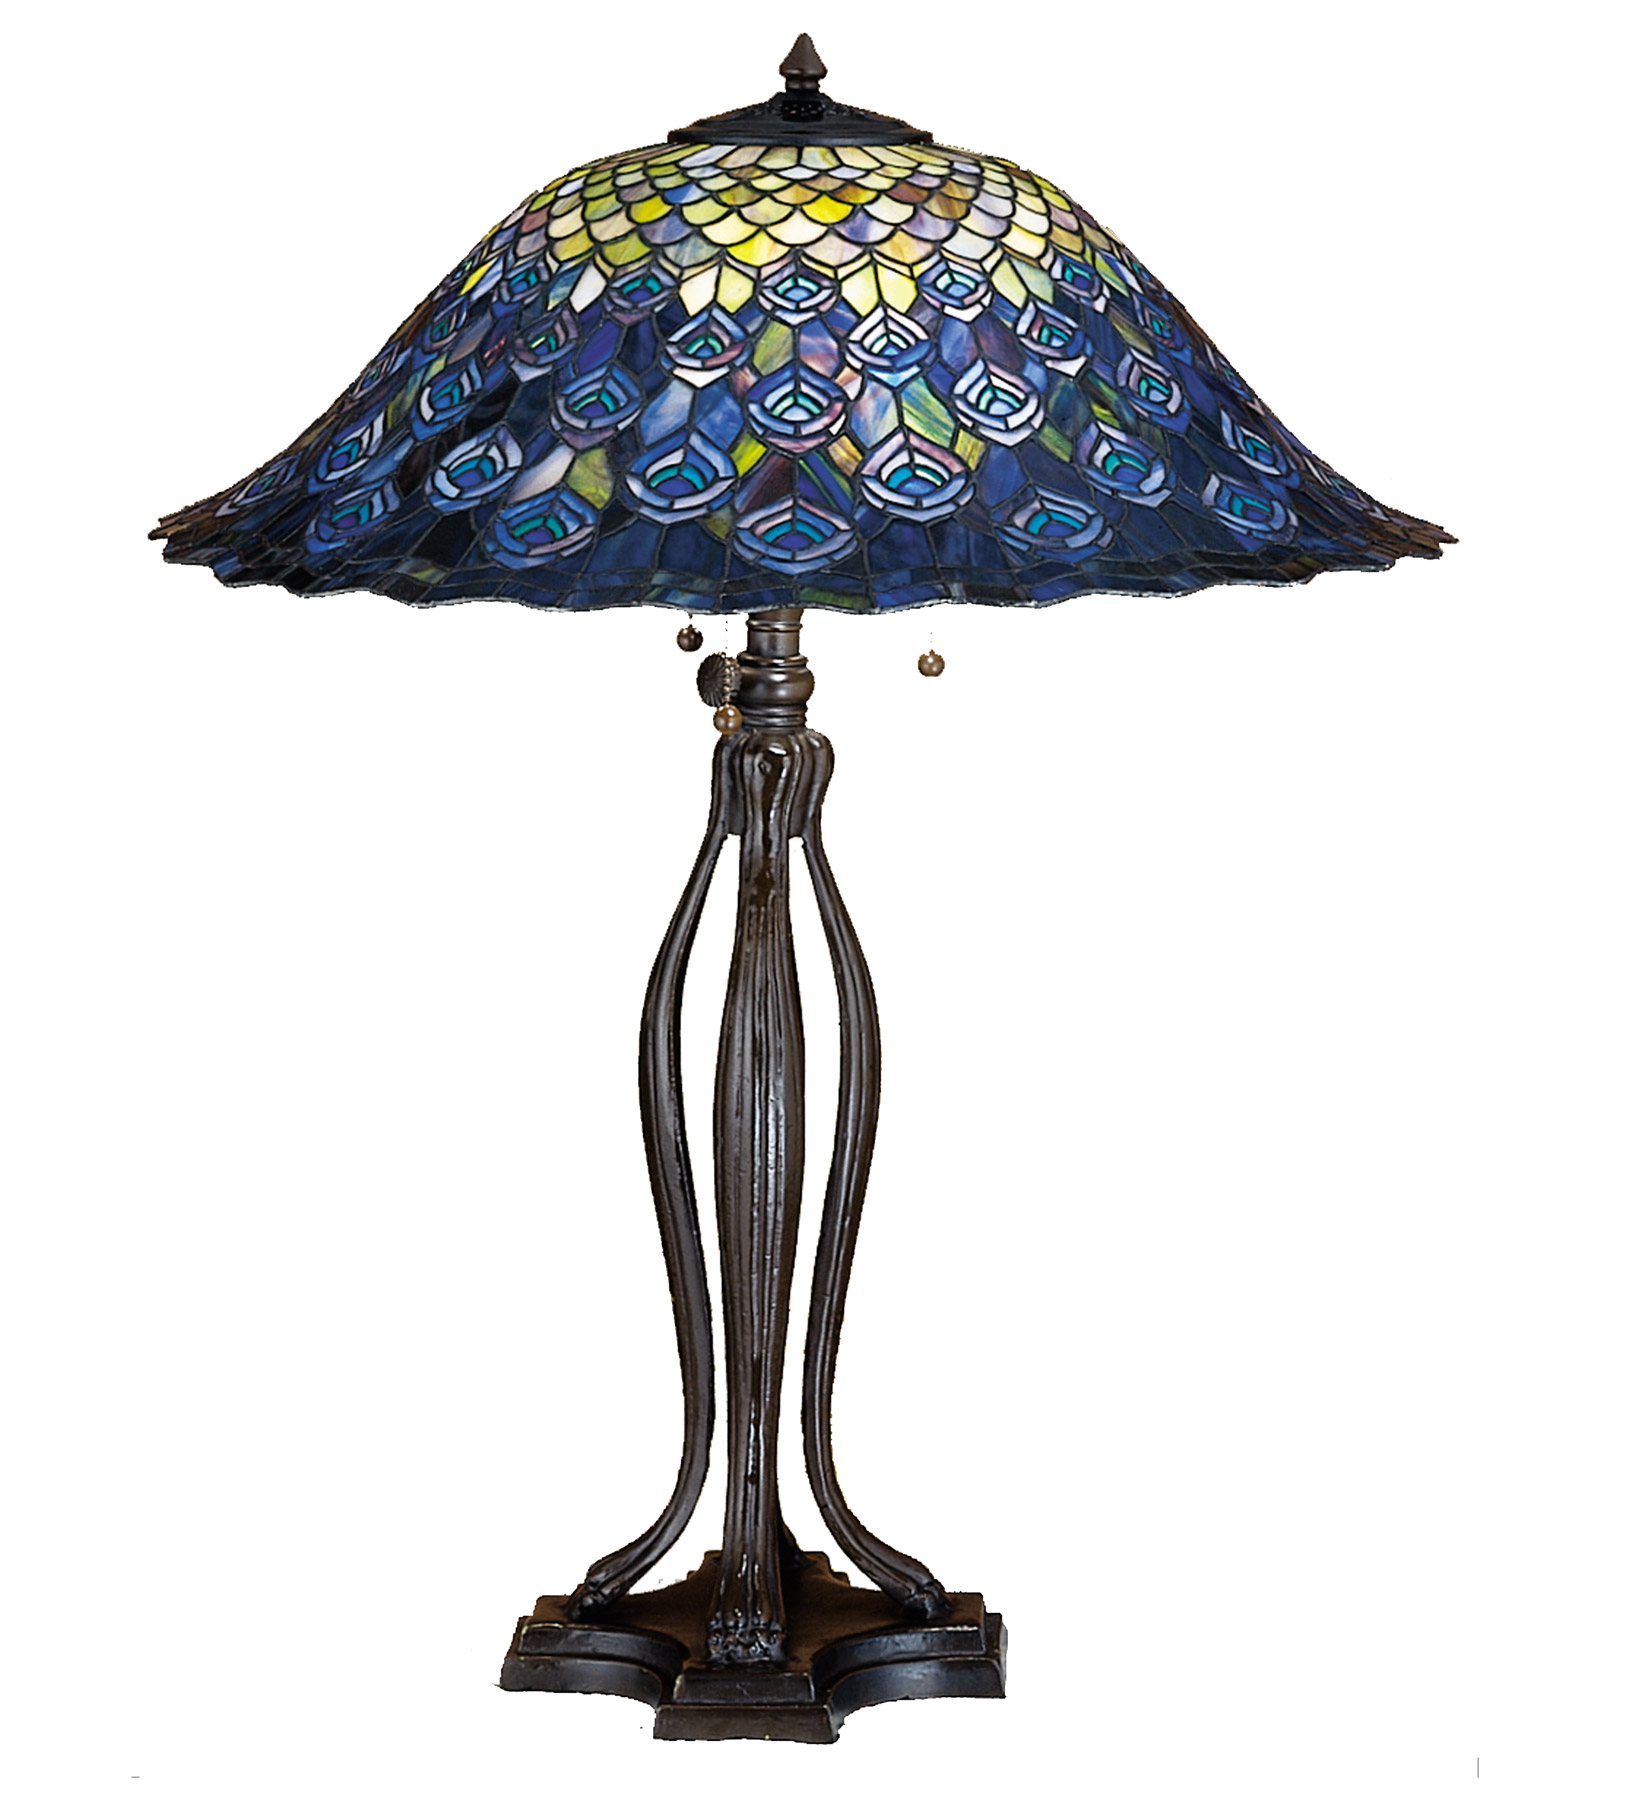 Meyda 28504 Tiffany Peacock Feather Table Lamp